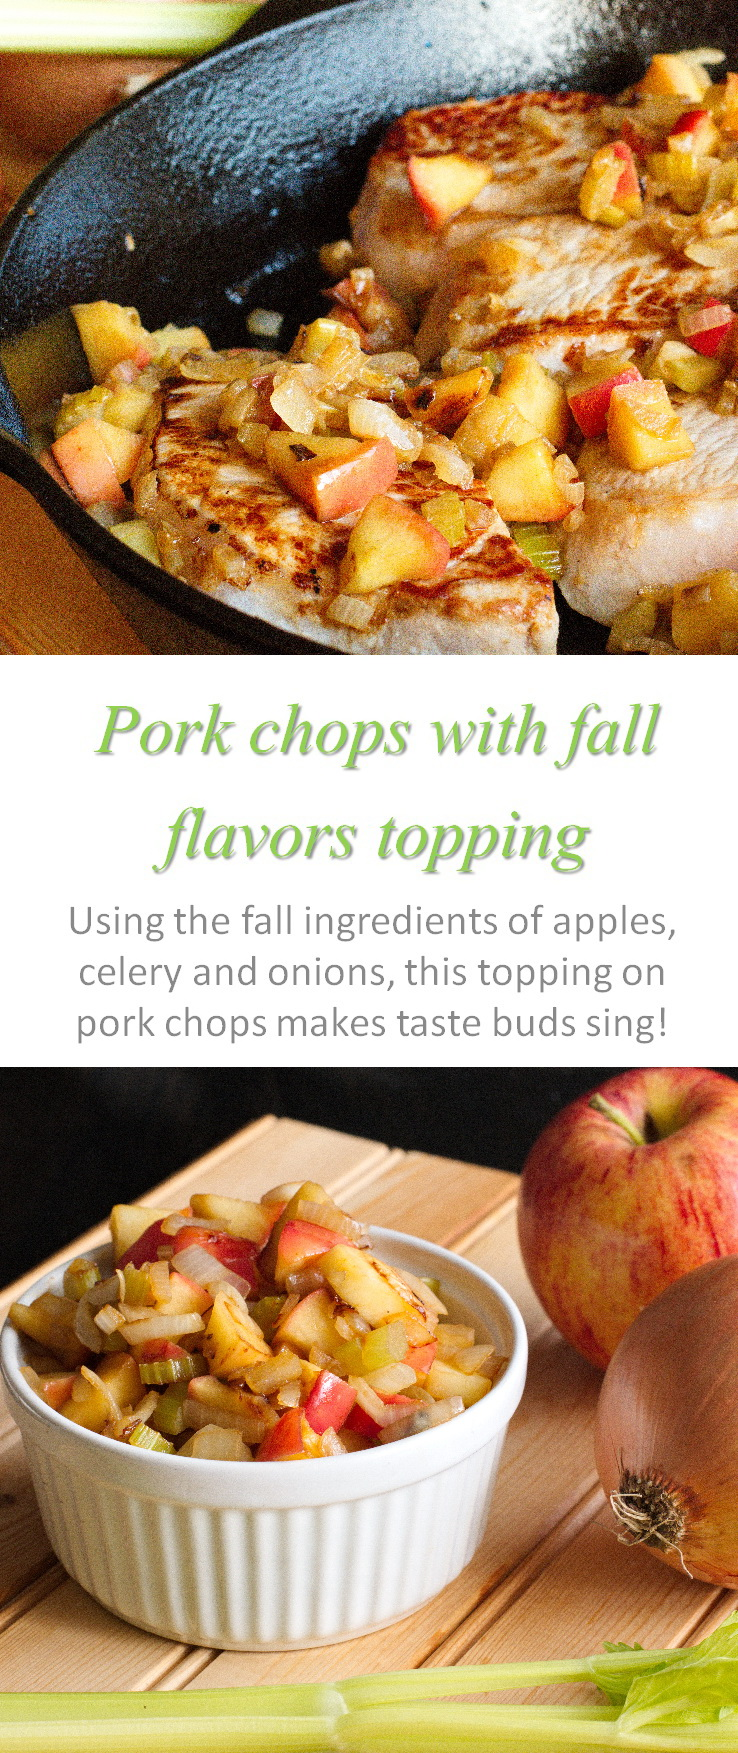 These grilled pork chops with fall flavors as a topping are Whole30 compliant and should be eaten all year round! #porkchops